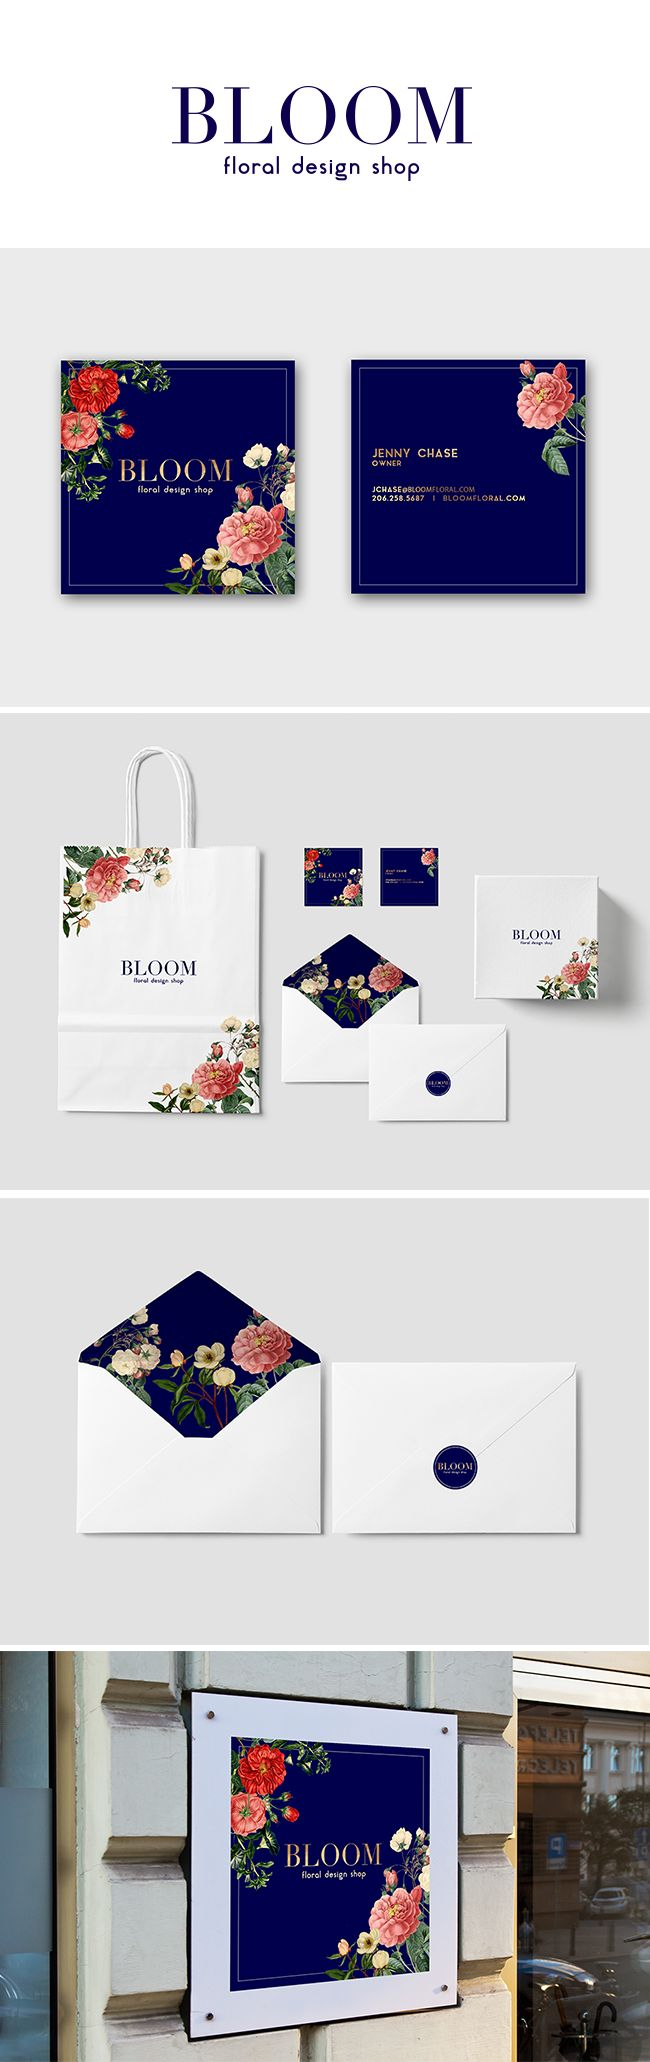 Bloom Floral Brand Stationary and Logo Design/Mockup https://www.kznwedding.dj